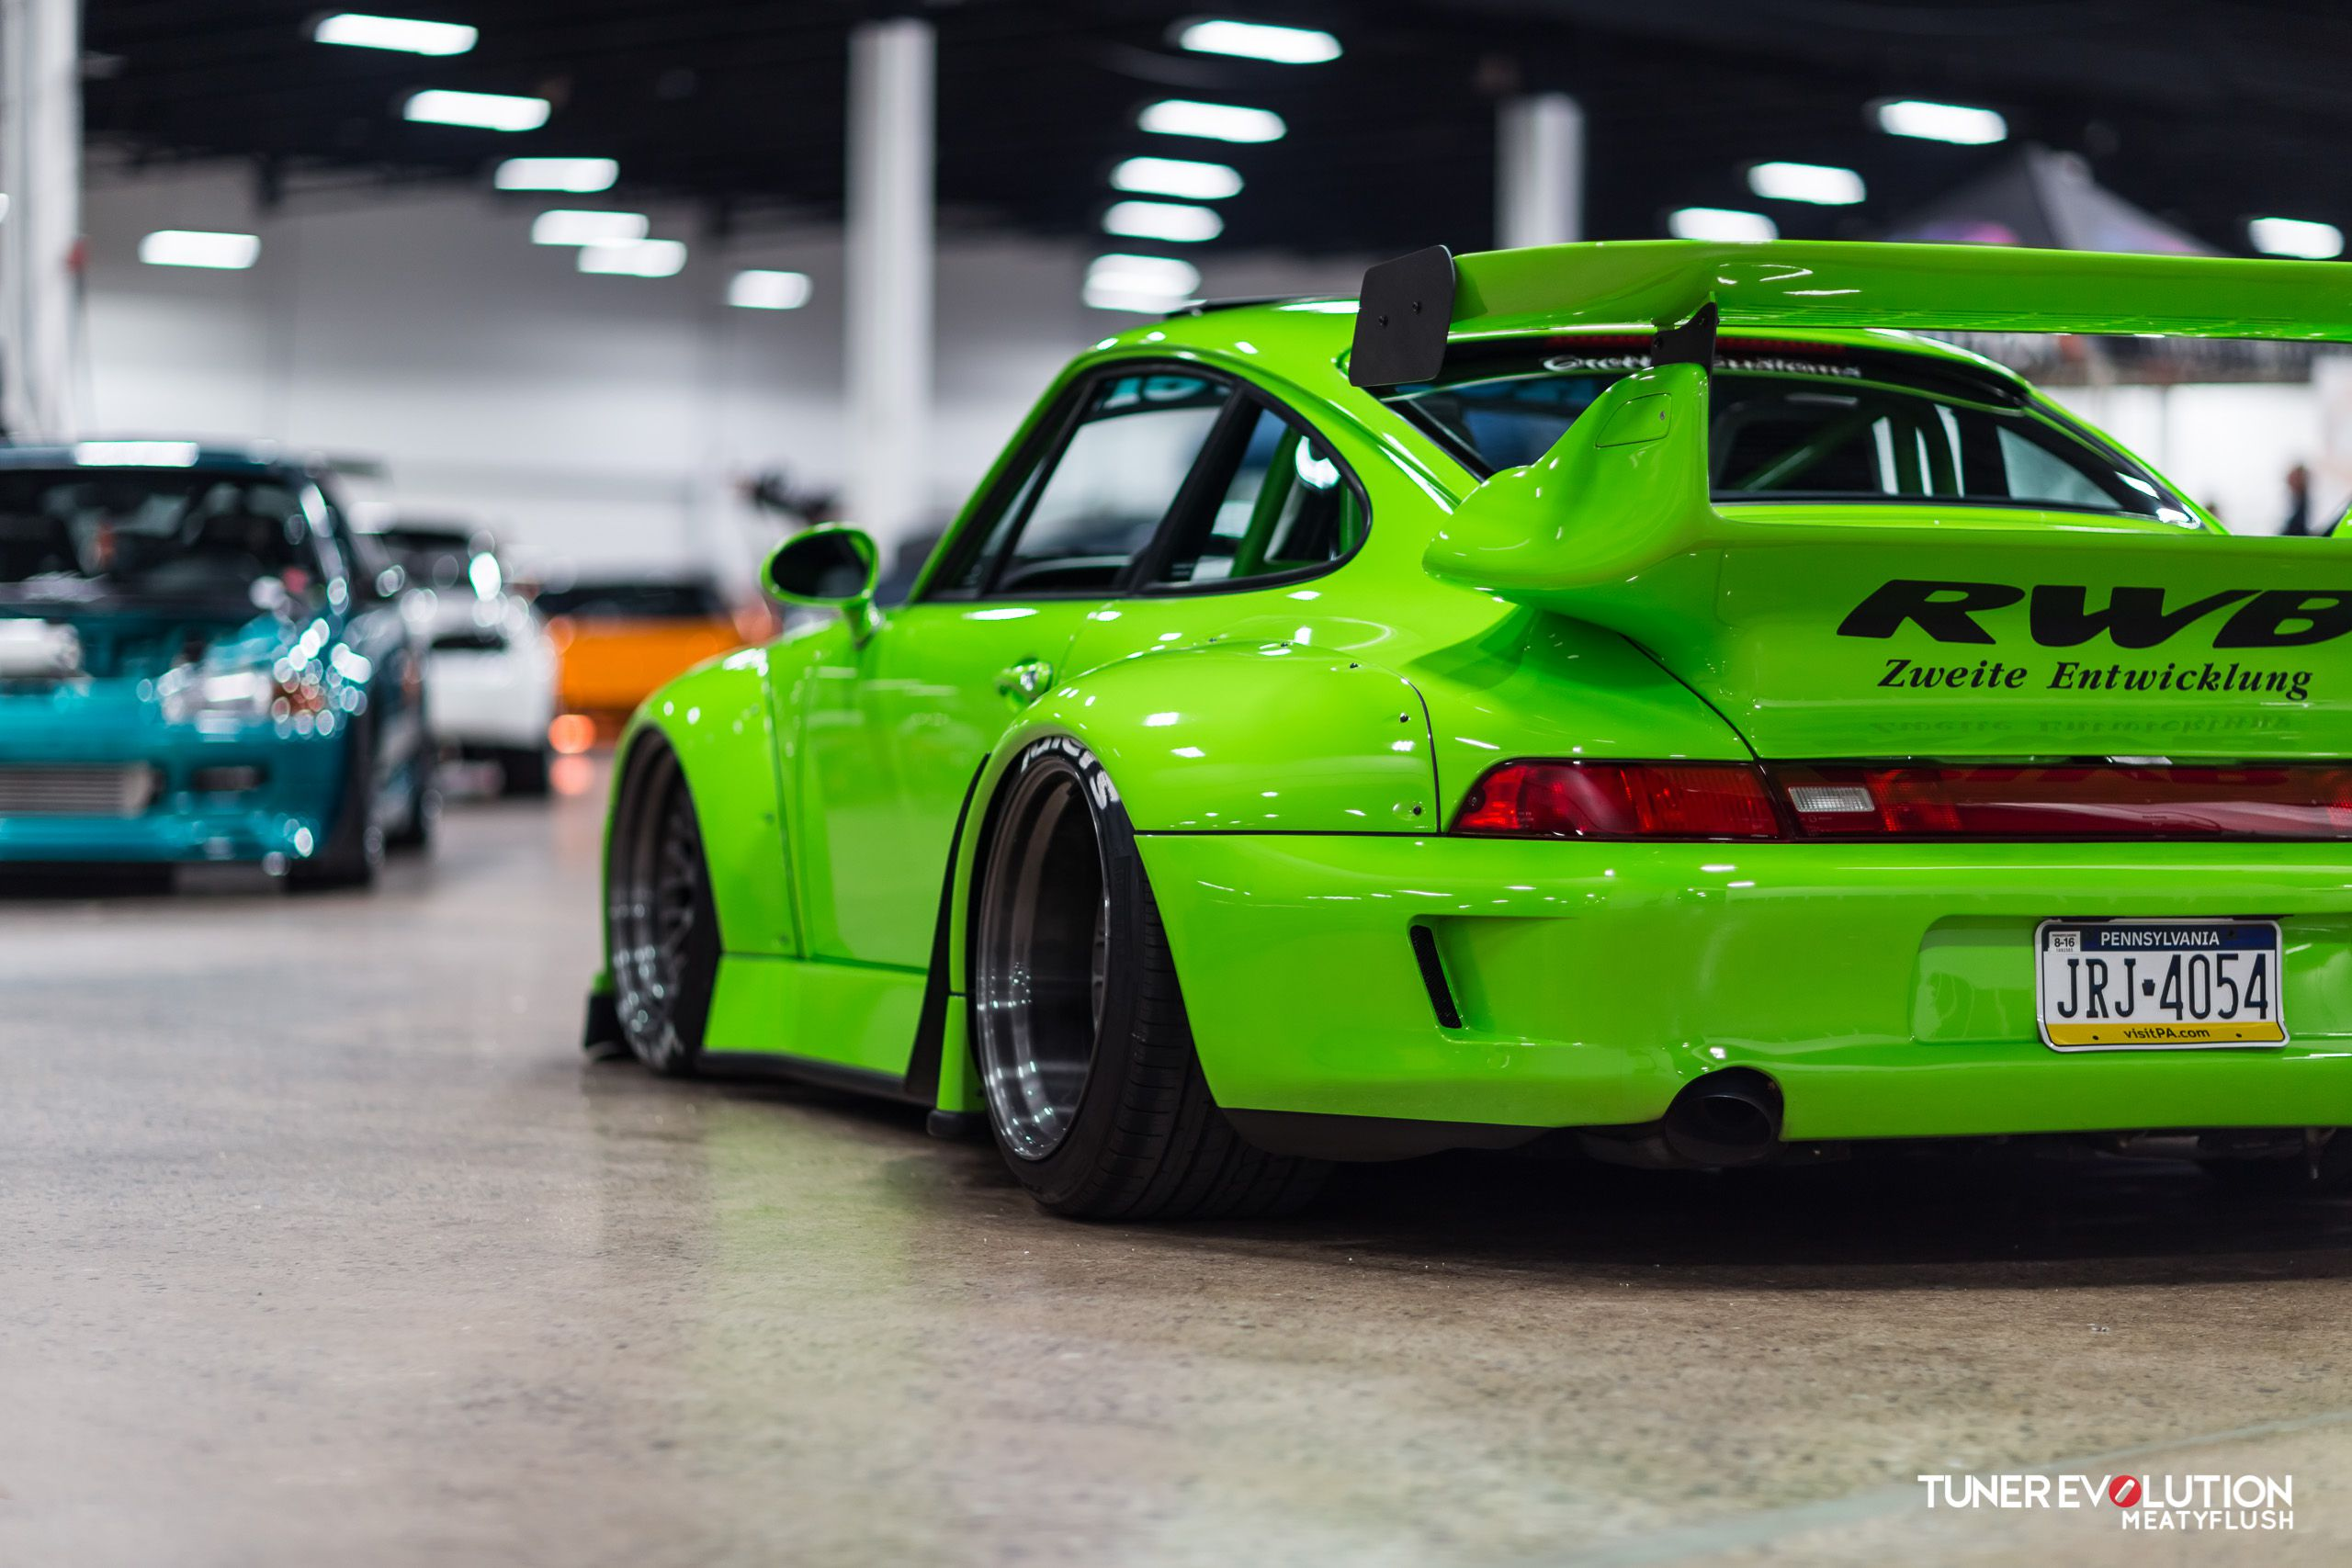 Tuner Evolution Automotive Lifestyle Events